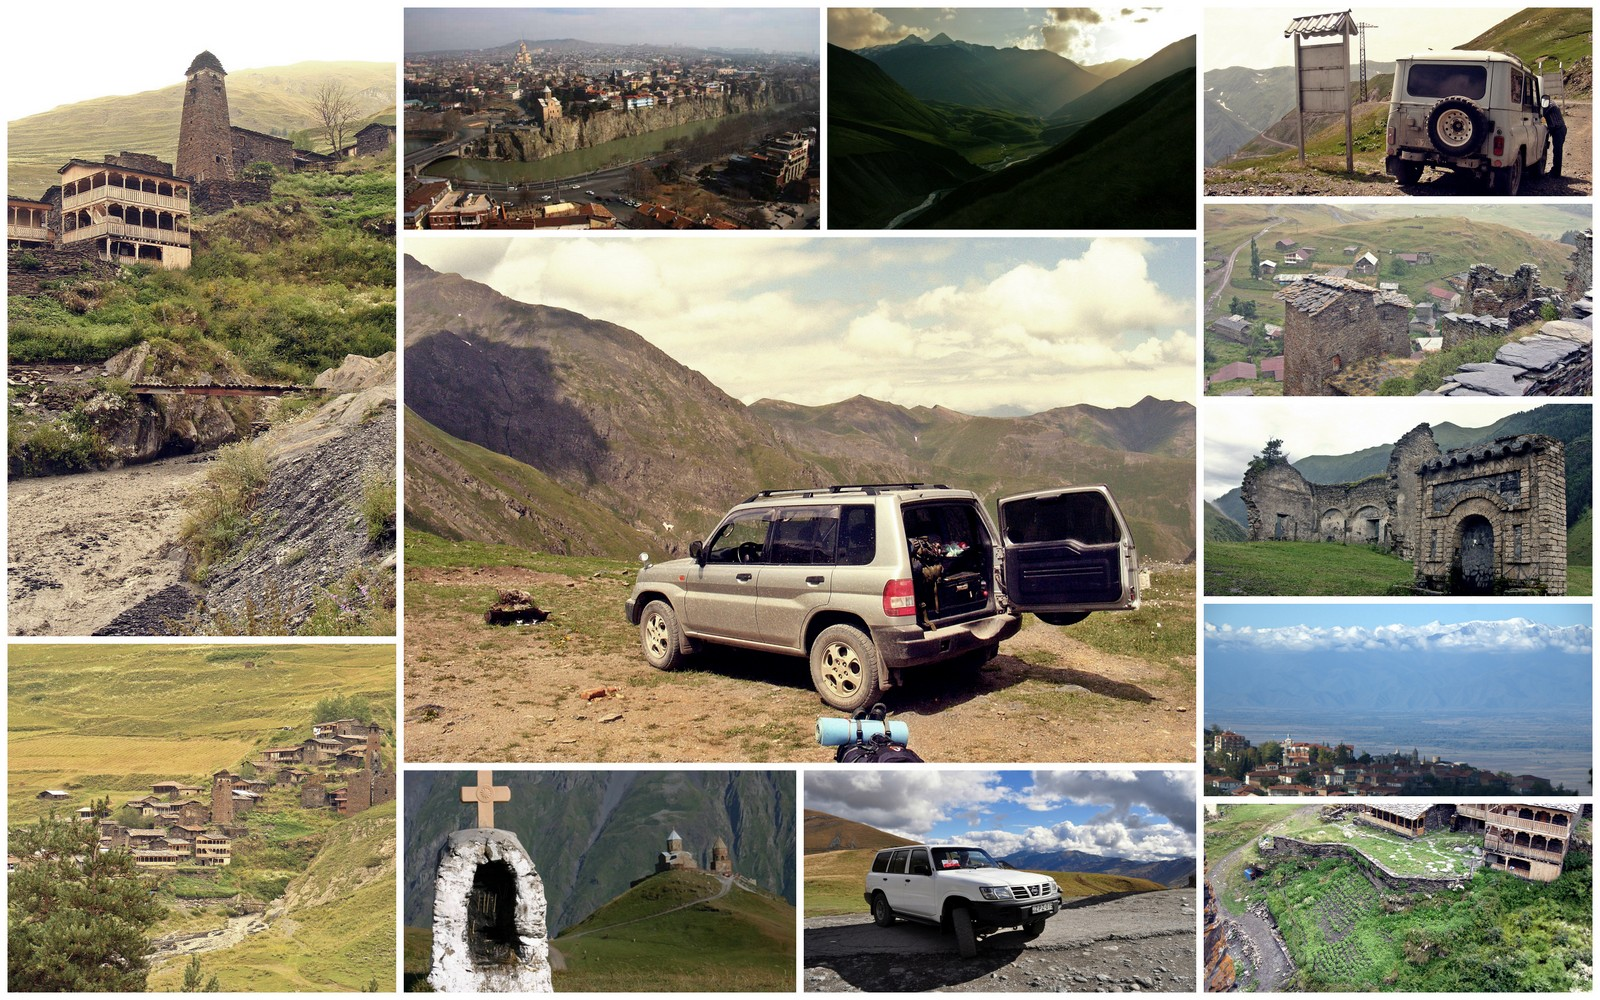 Gruzja off road 4x4